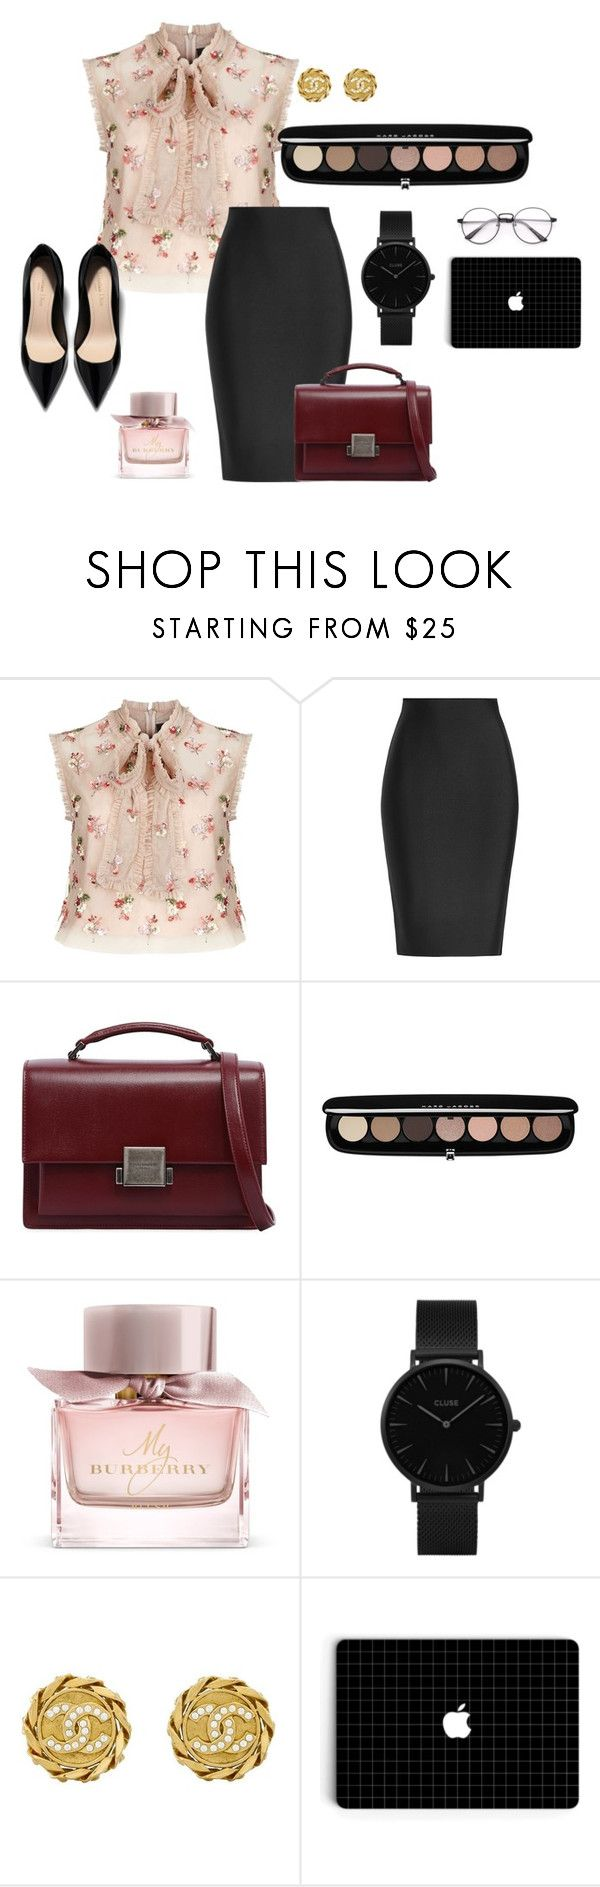 Work Outfit by creative-esprecielo on Polyvore featuring Needle & Thread, Roland Mouret, Yves Saint Laurent, CLUSE, Chanel, Marc Jacobs, Burberry, Girls, workoutfit and adult